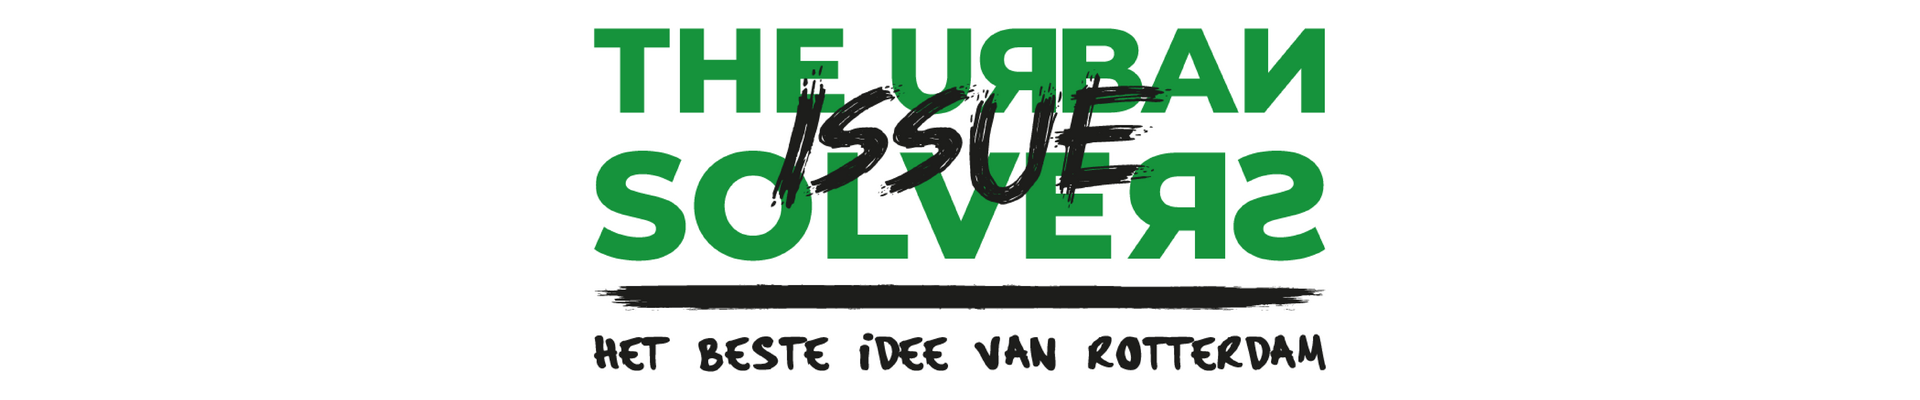 The Urban Issue Solvers